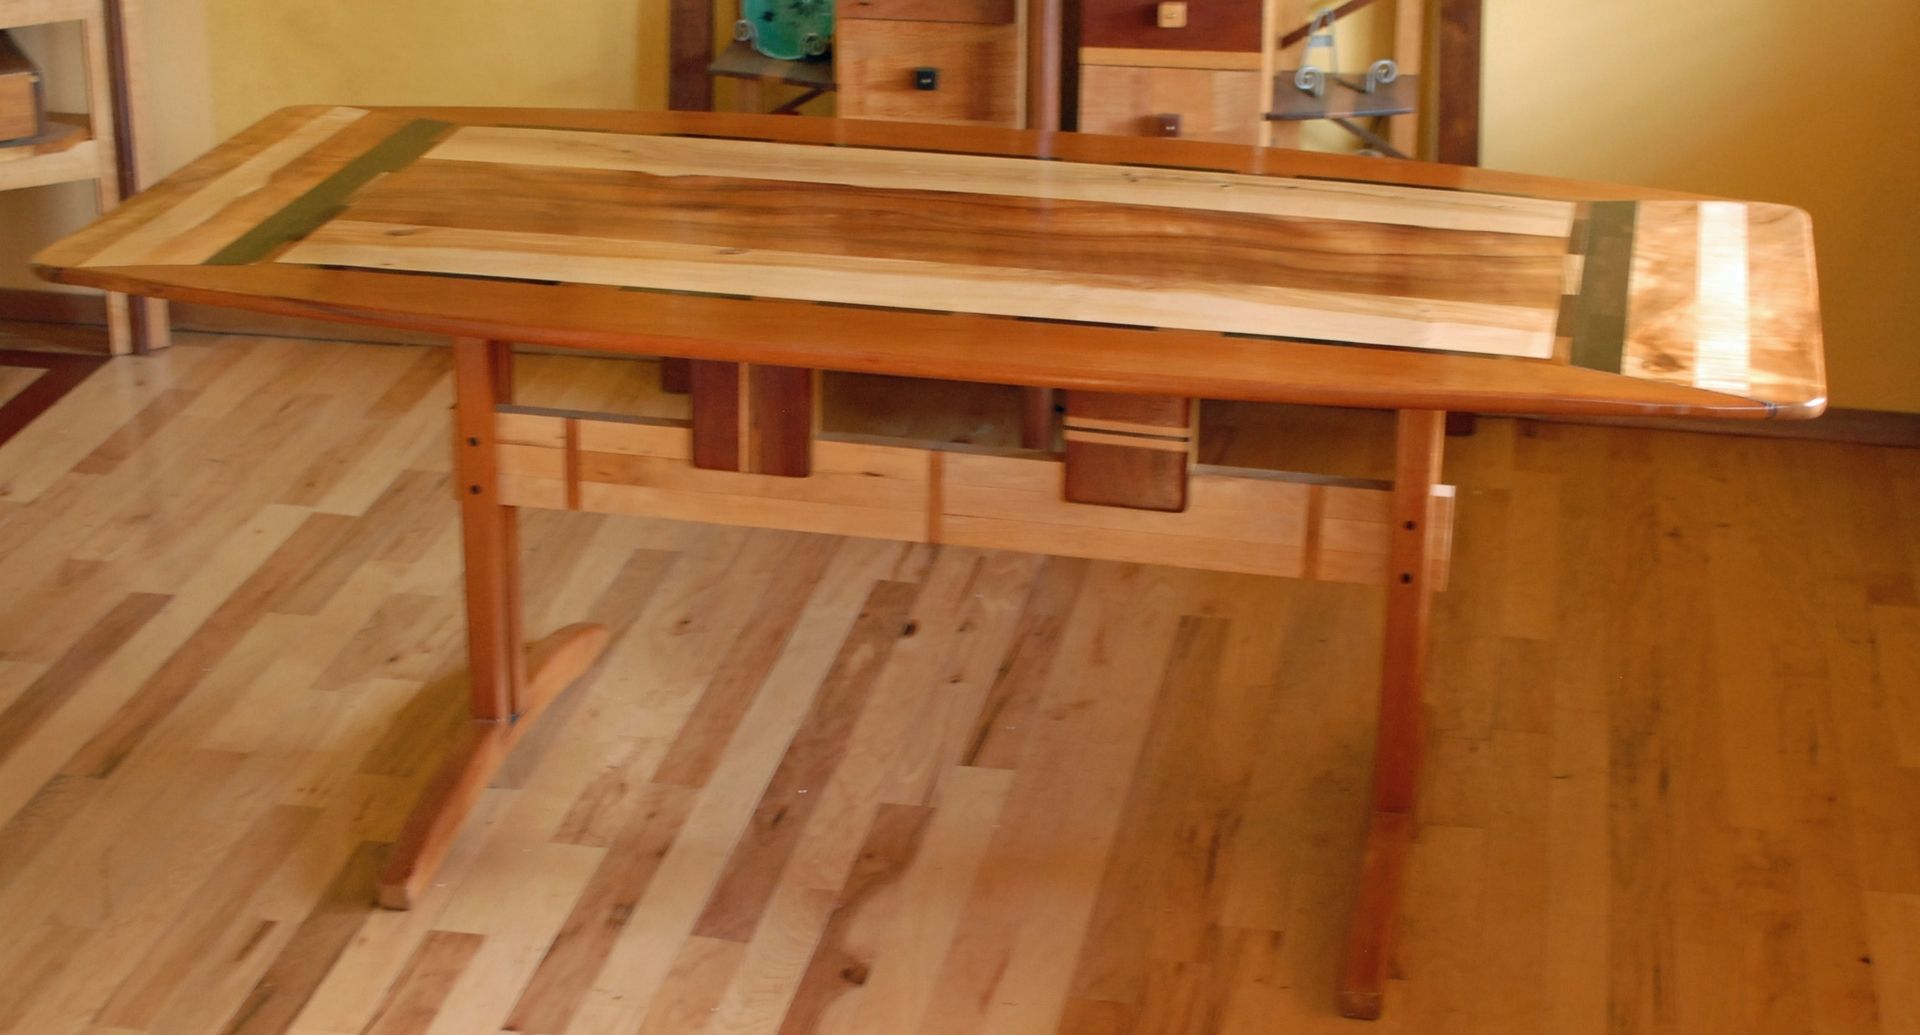 high chairs that attach to table dining chair seat covers diy custom made trestle room in koa and spanish cedar by allan parachini | custommade.com